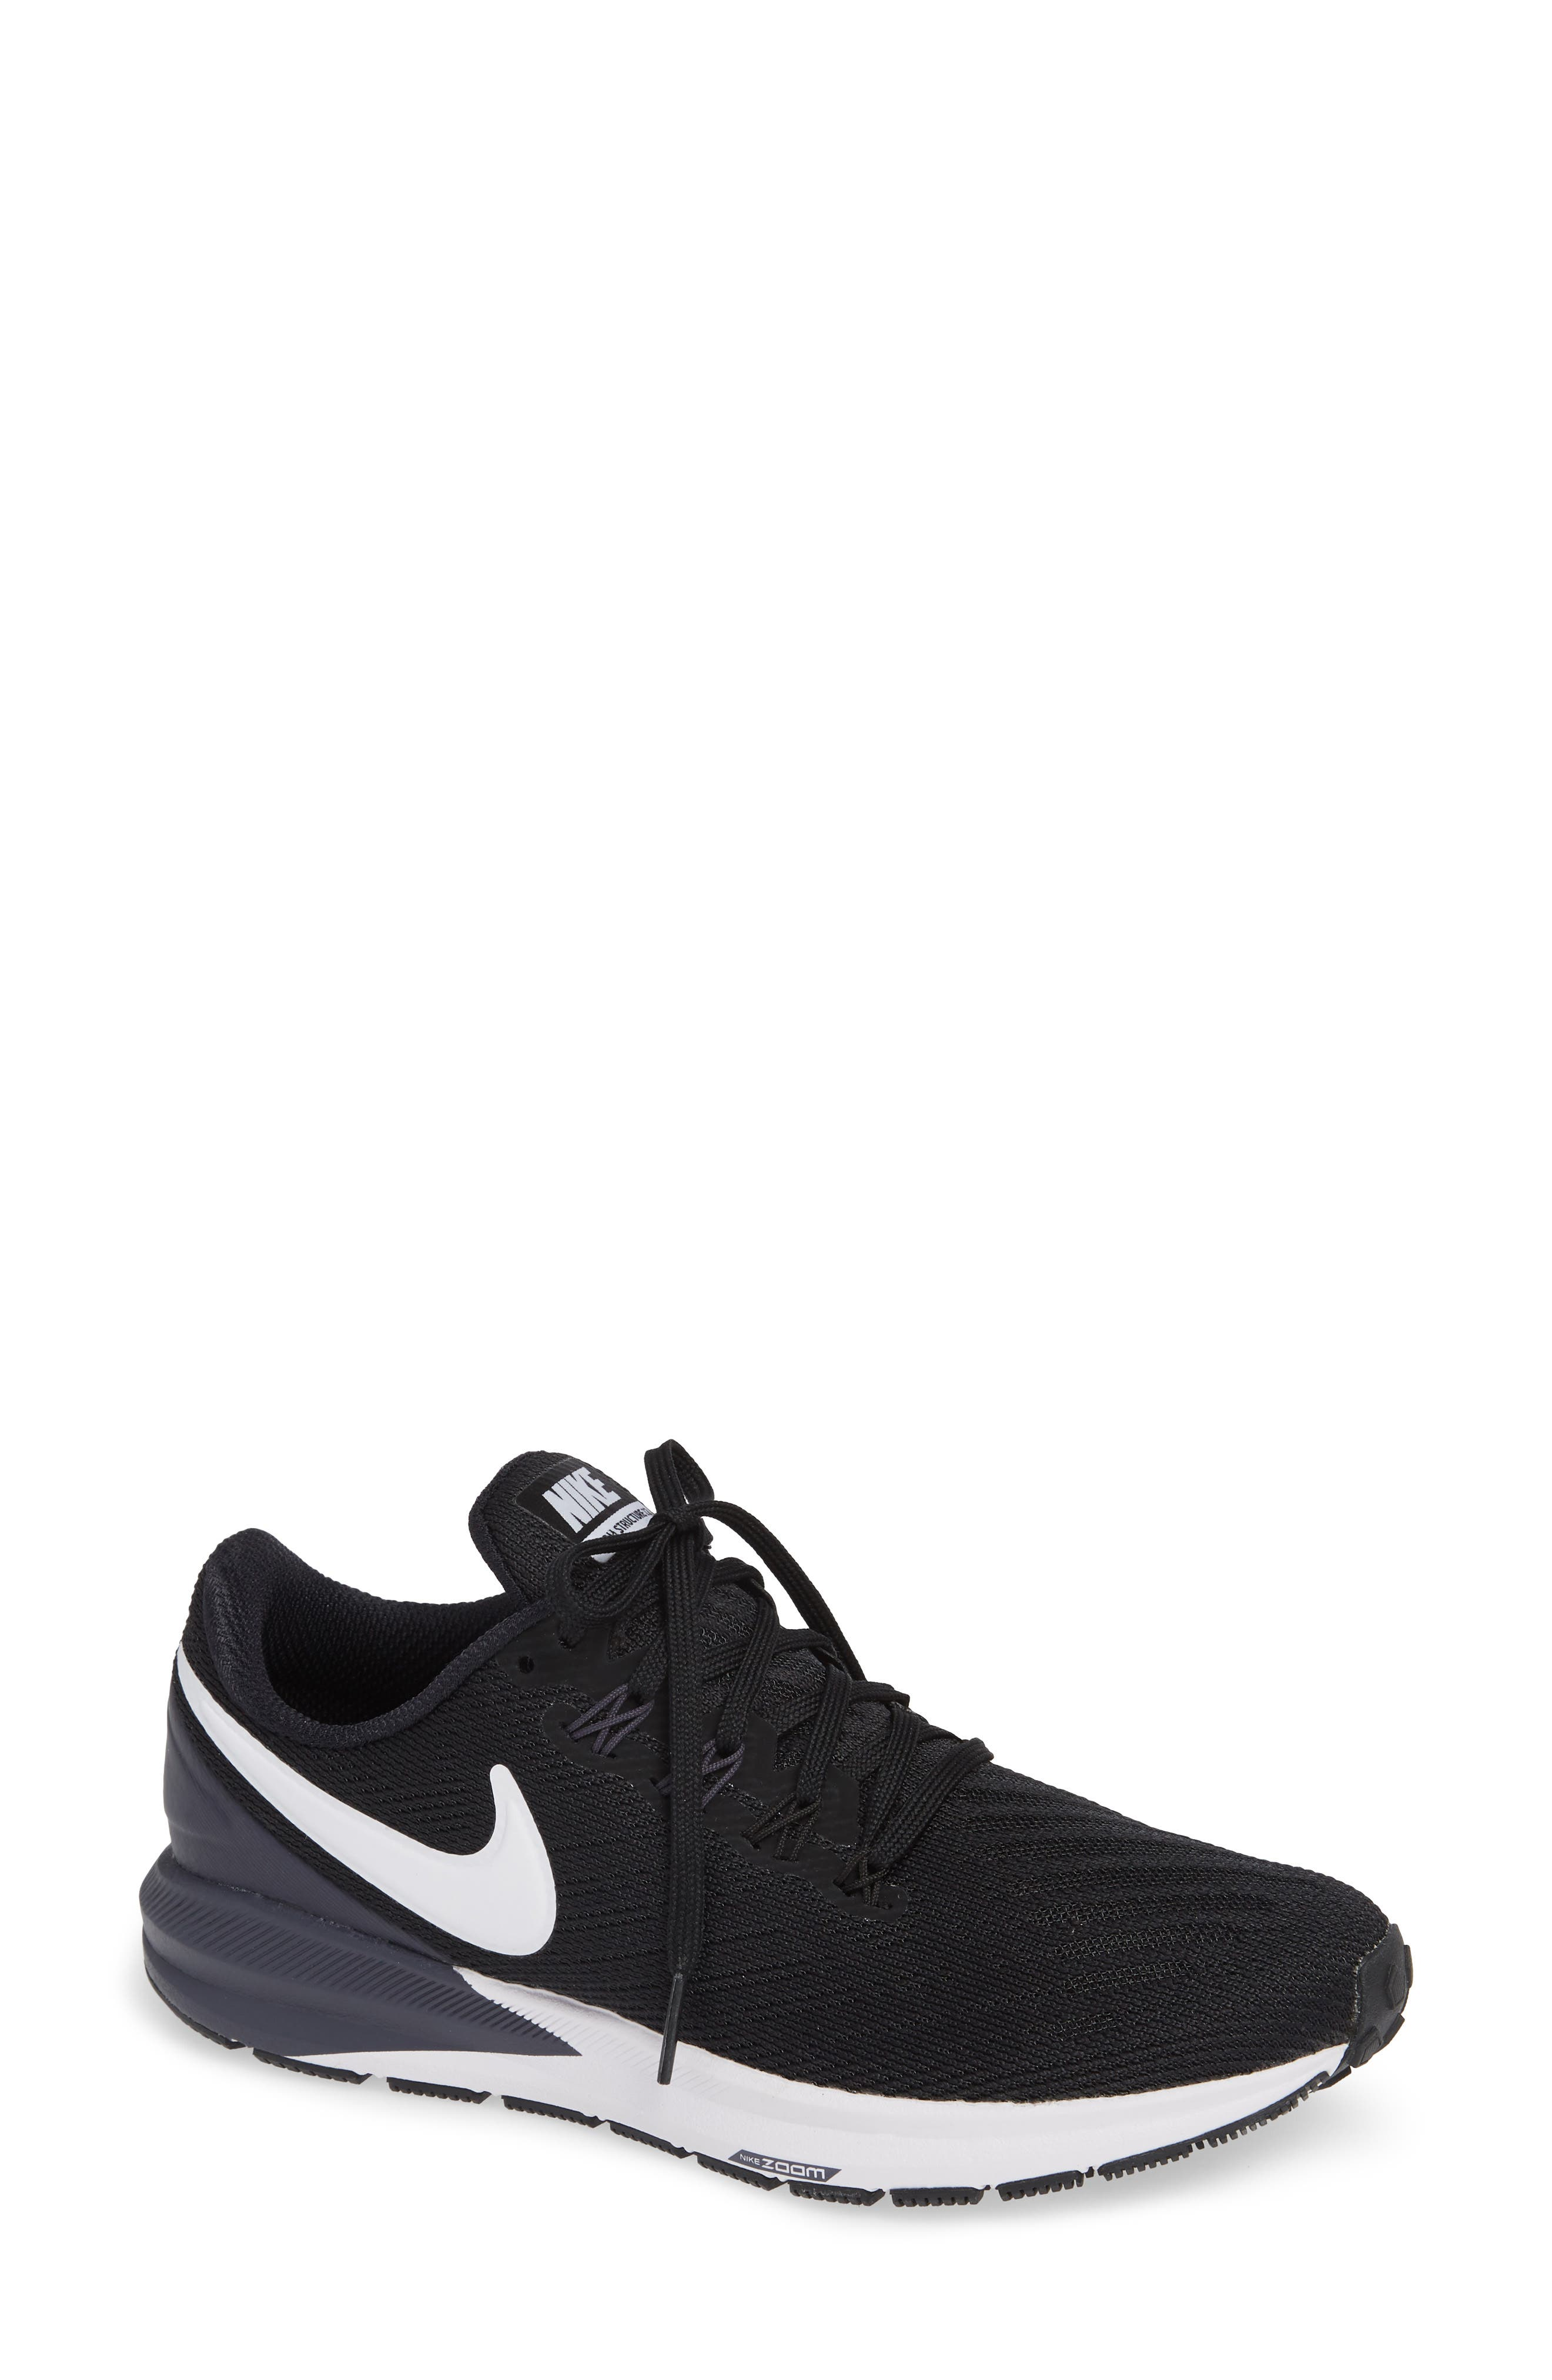 NIKE Air Zoom Structure 22 Sneaker, Main, color, BLACK/ WHITE-GRIDIRON